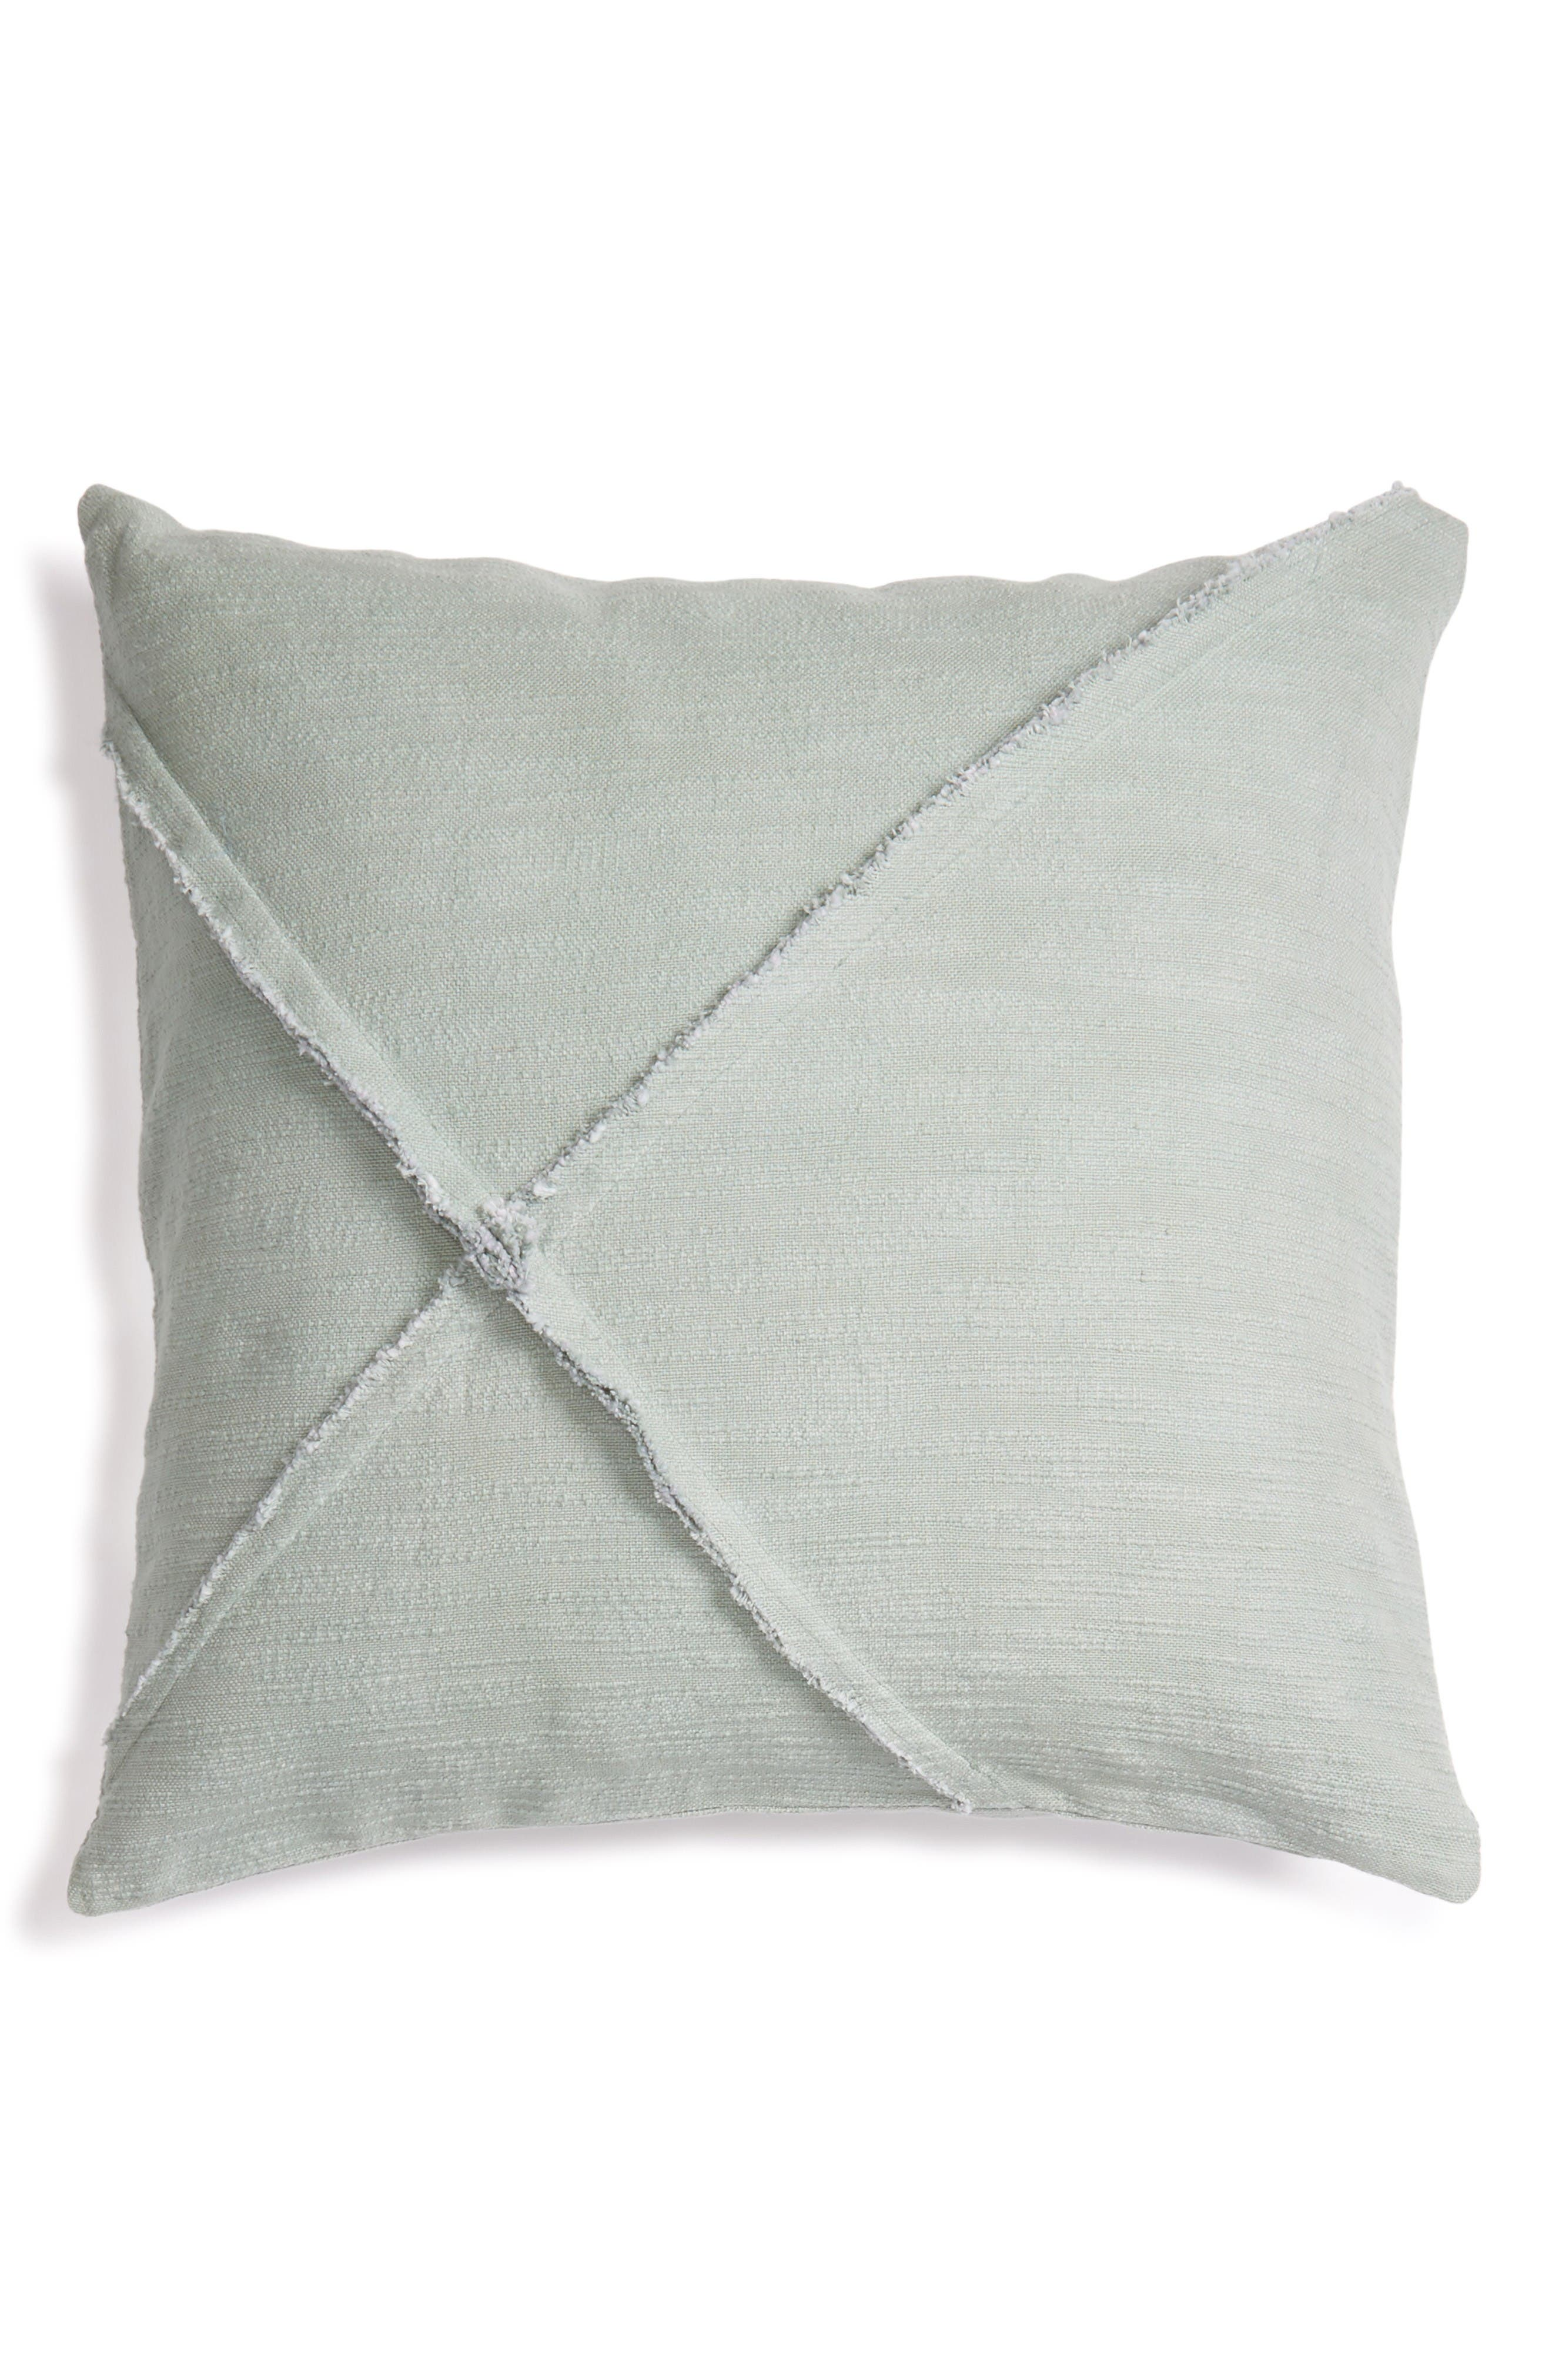 Nordstrom at Home Frayed Accent Pillow